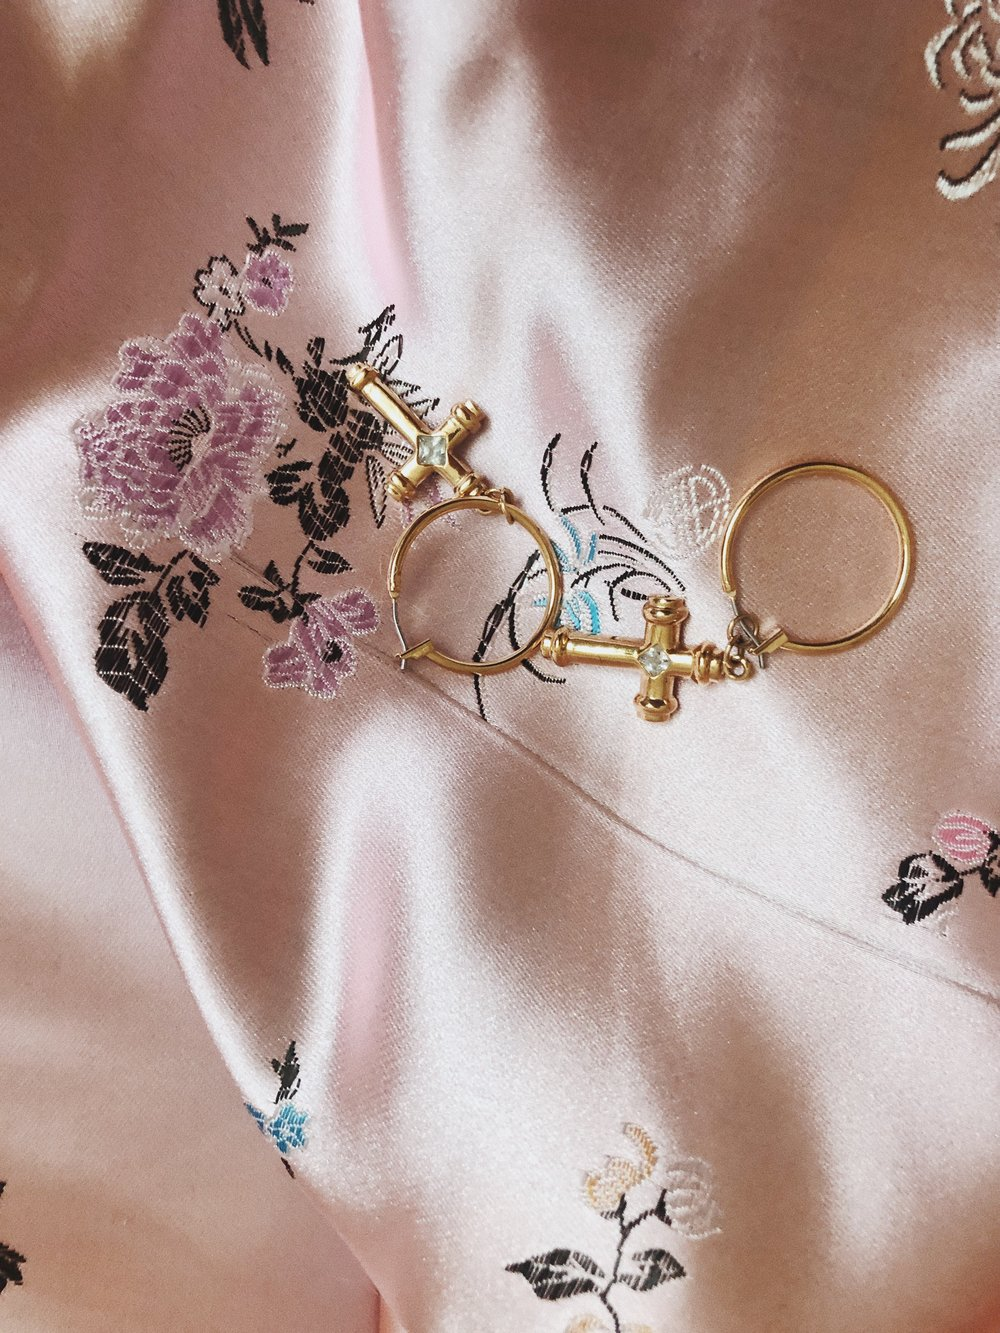 OK, CROSSES AGAIN, BUT THESE VANESSA MOONEY ONES ARE JUST WAY TOO PRETTY! THEY GO SO WELL WITH CASUAL STUFF BUT ALSO WITH MORE DRESSY OUTFITS, BECAUSE THEY ARE QUITE SMALL. I SIMPLY LOVE THEM! – J